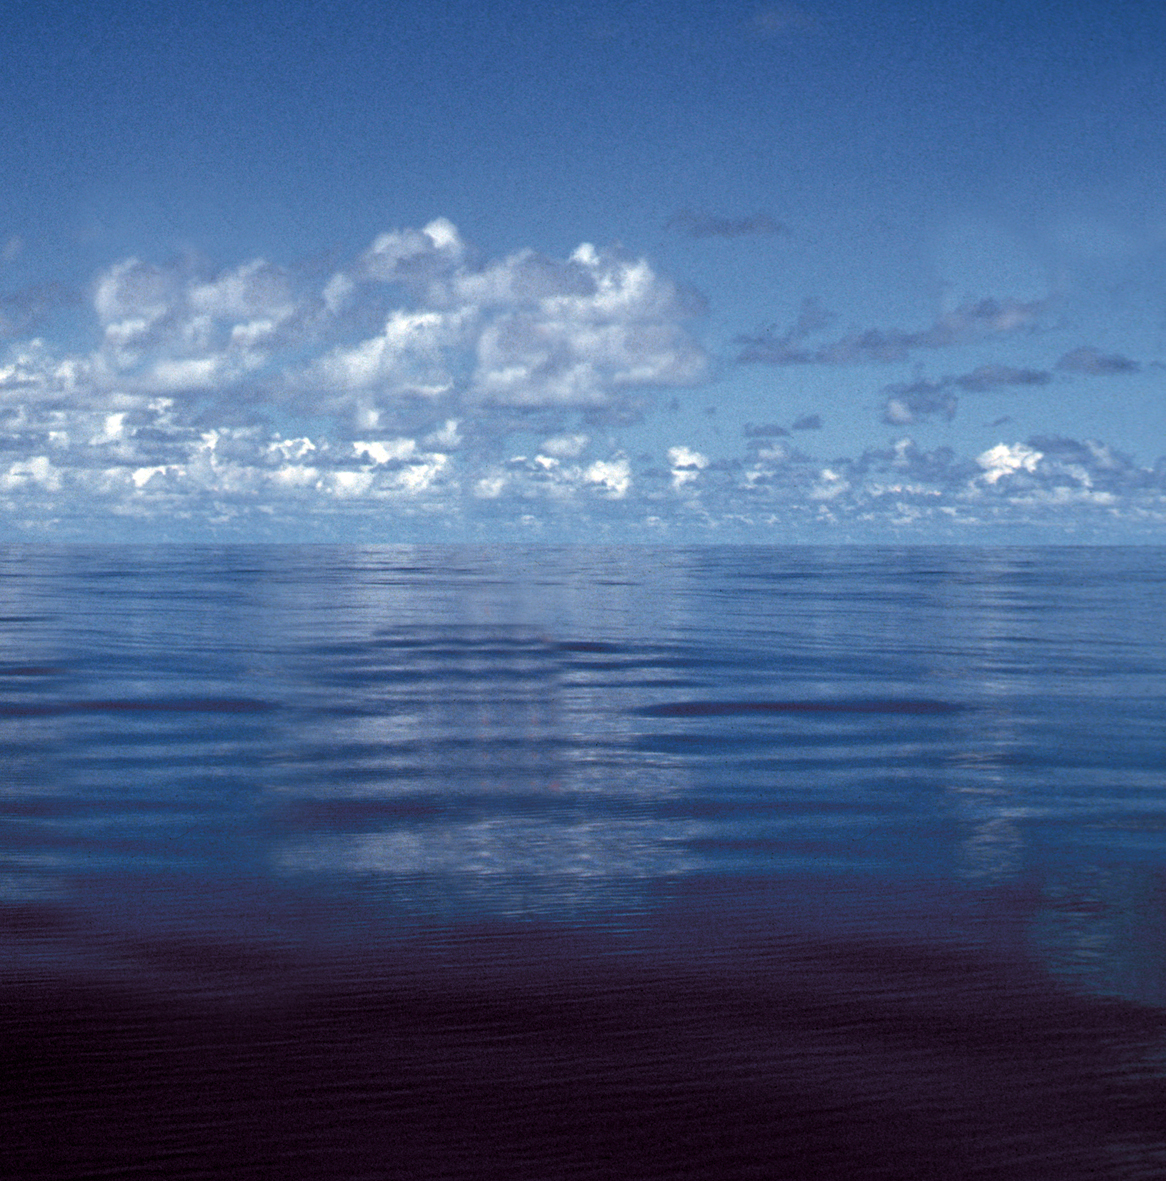 calm ocean with cloudy sky